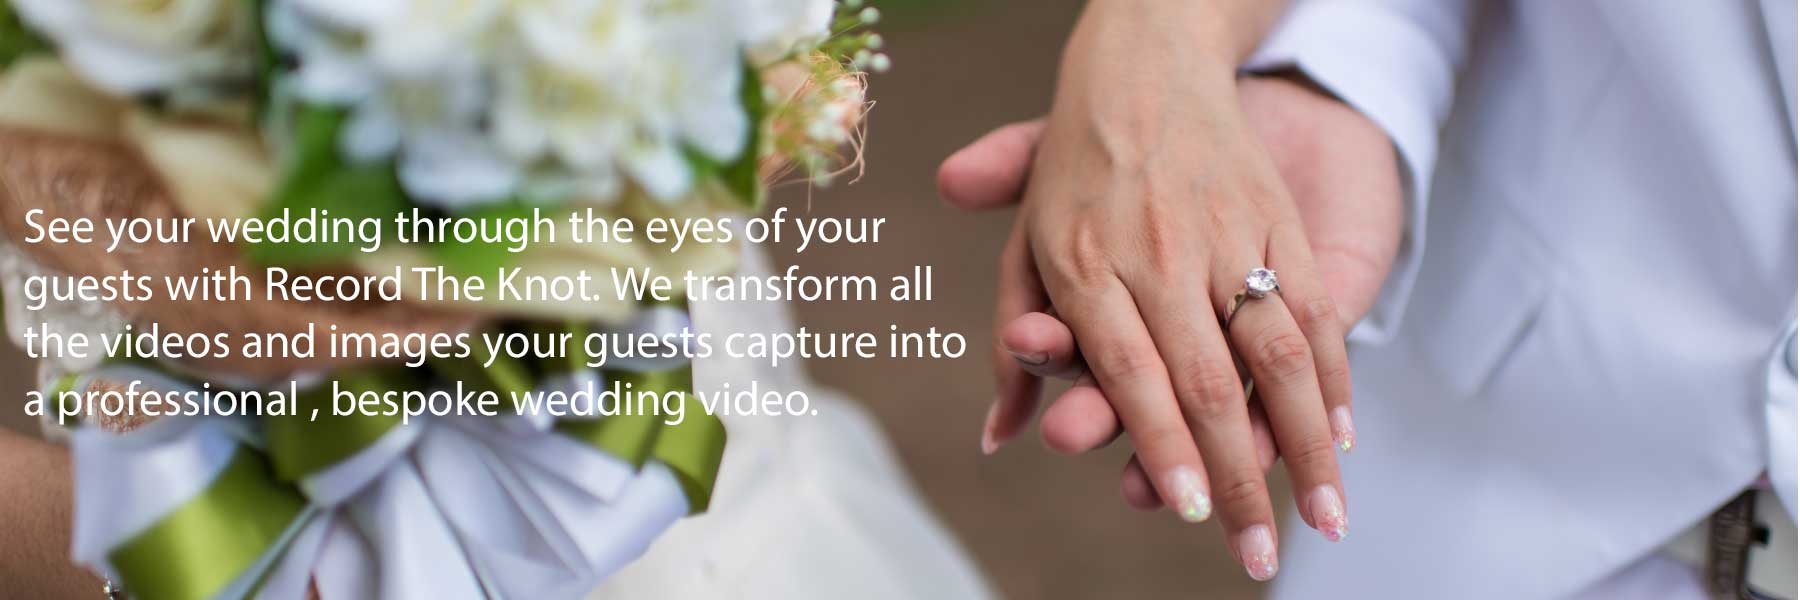 See your wedding through the eyes of your guests with Record The Knot. We transform all the videos and images your guests capture into a professional , bespoke wedding video.